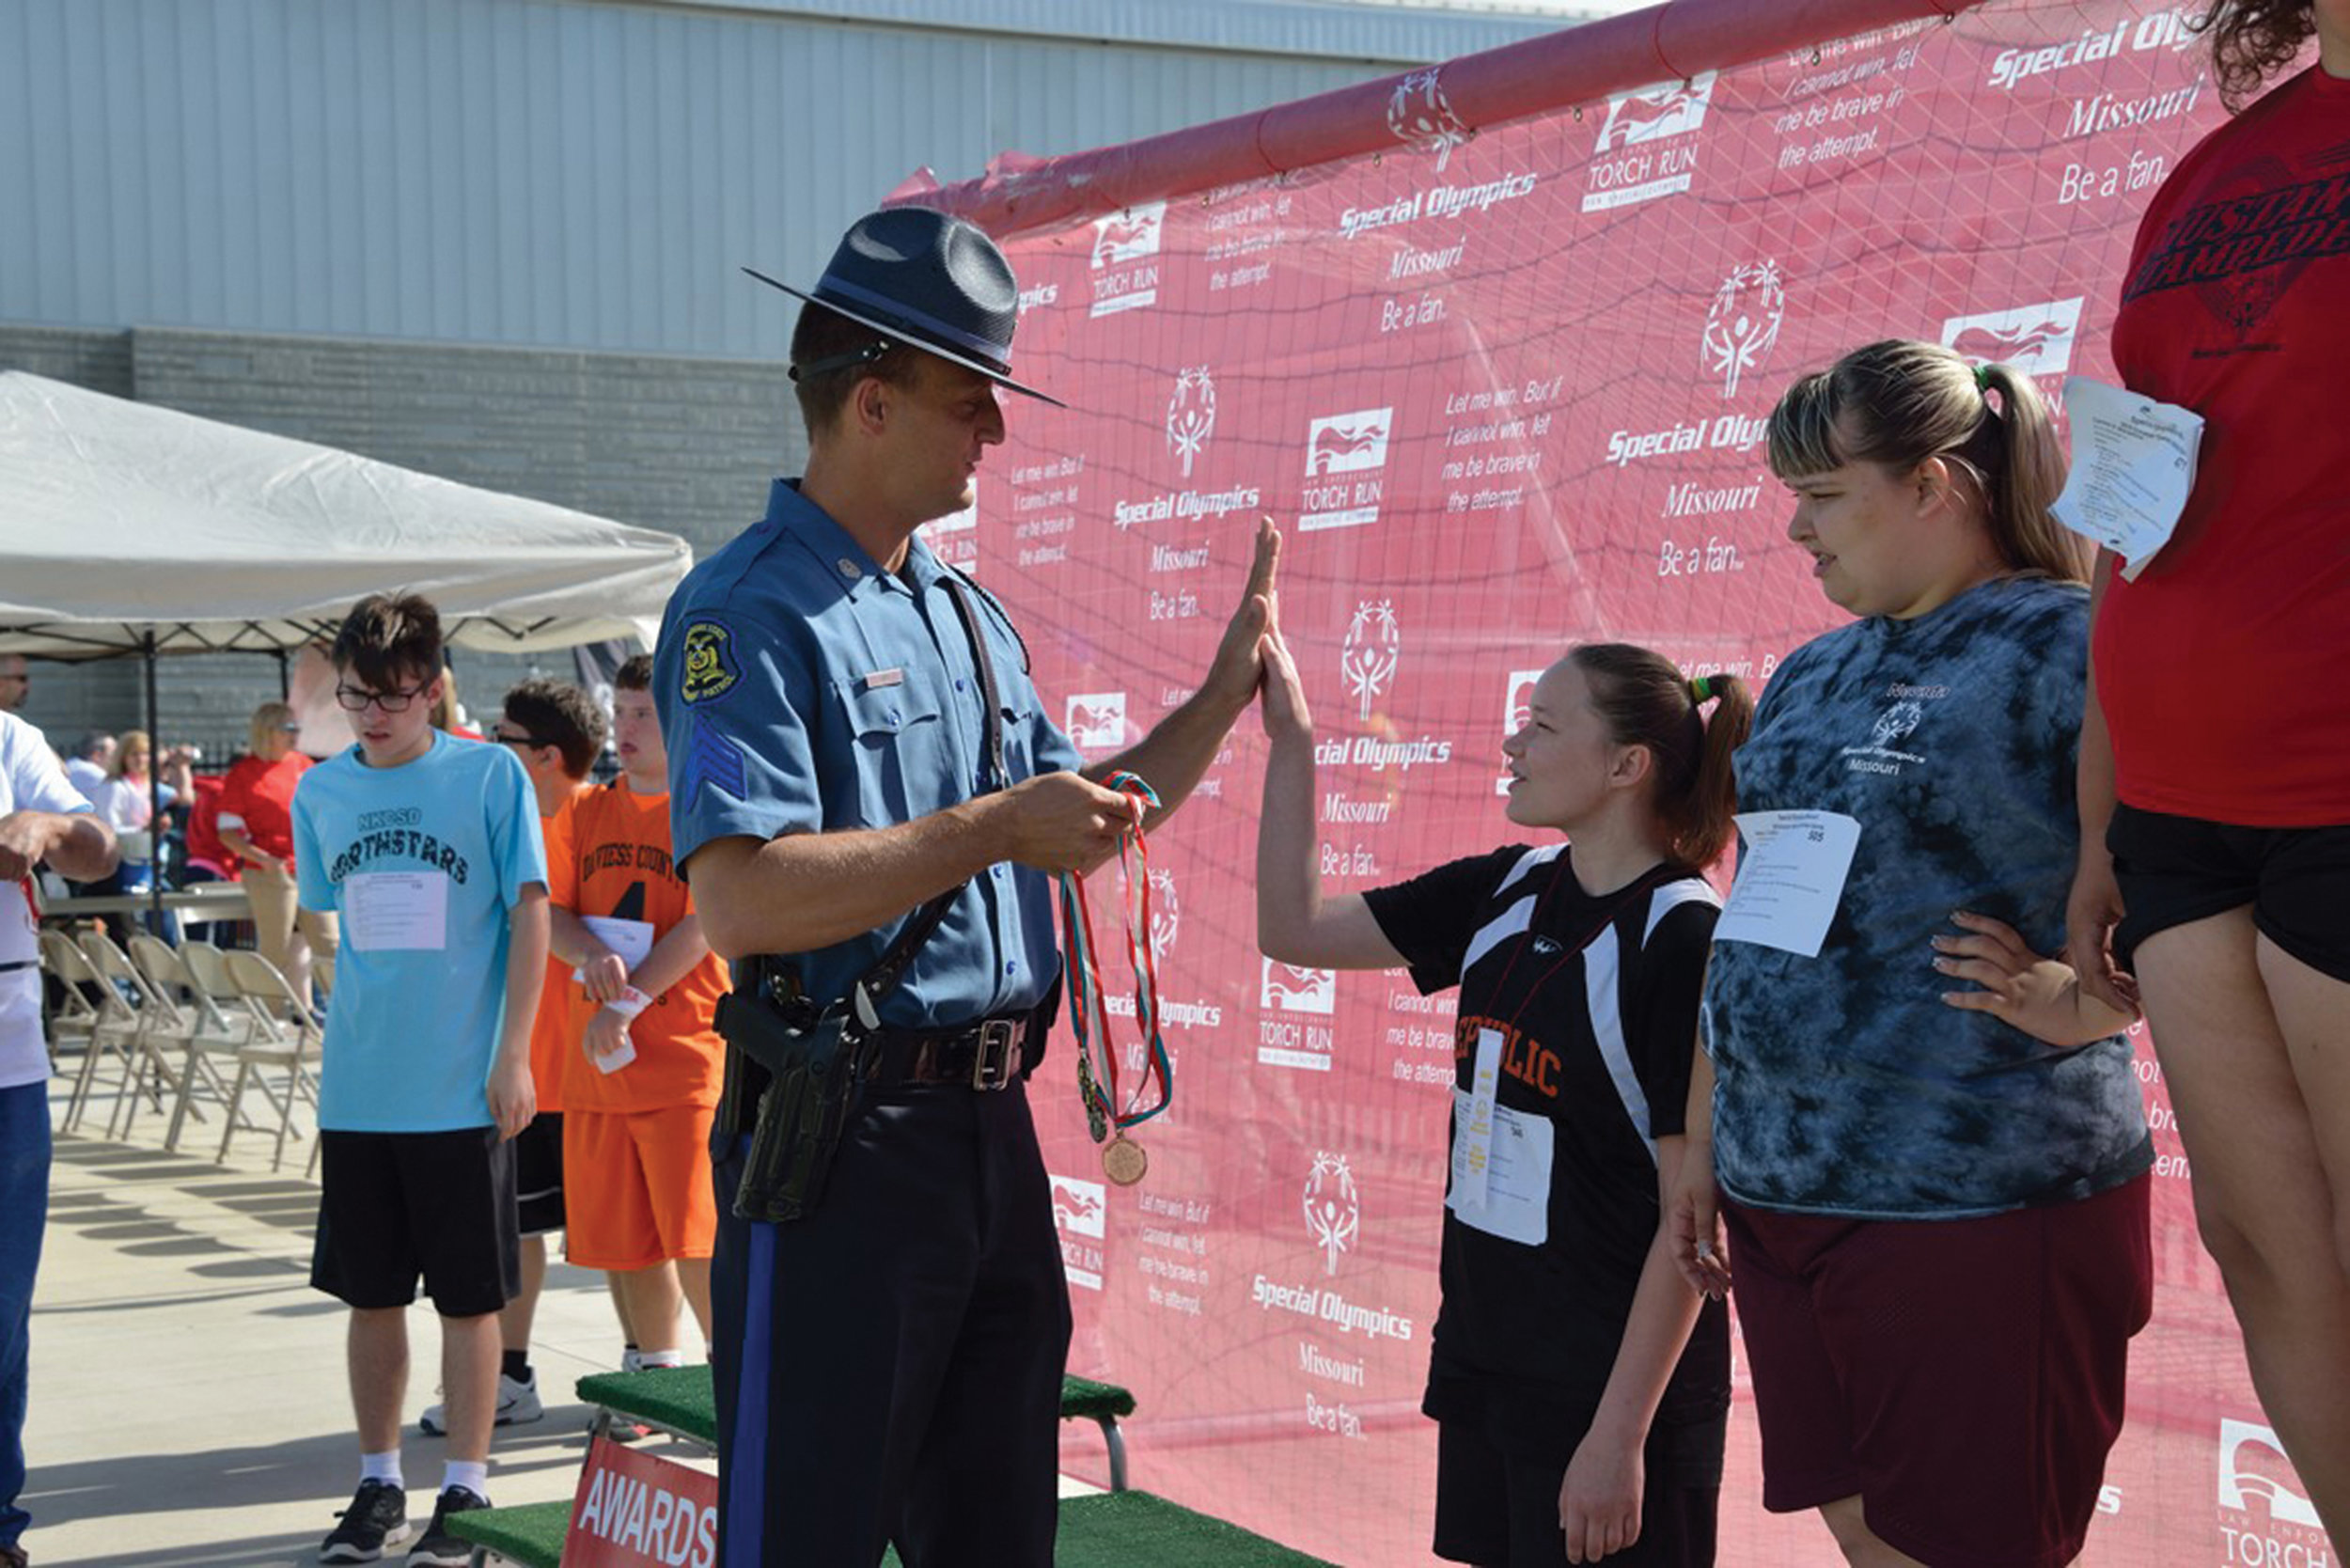 The only thing better than an award after competition may be a high-five from our friends in blue